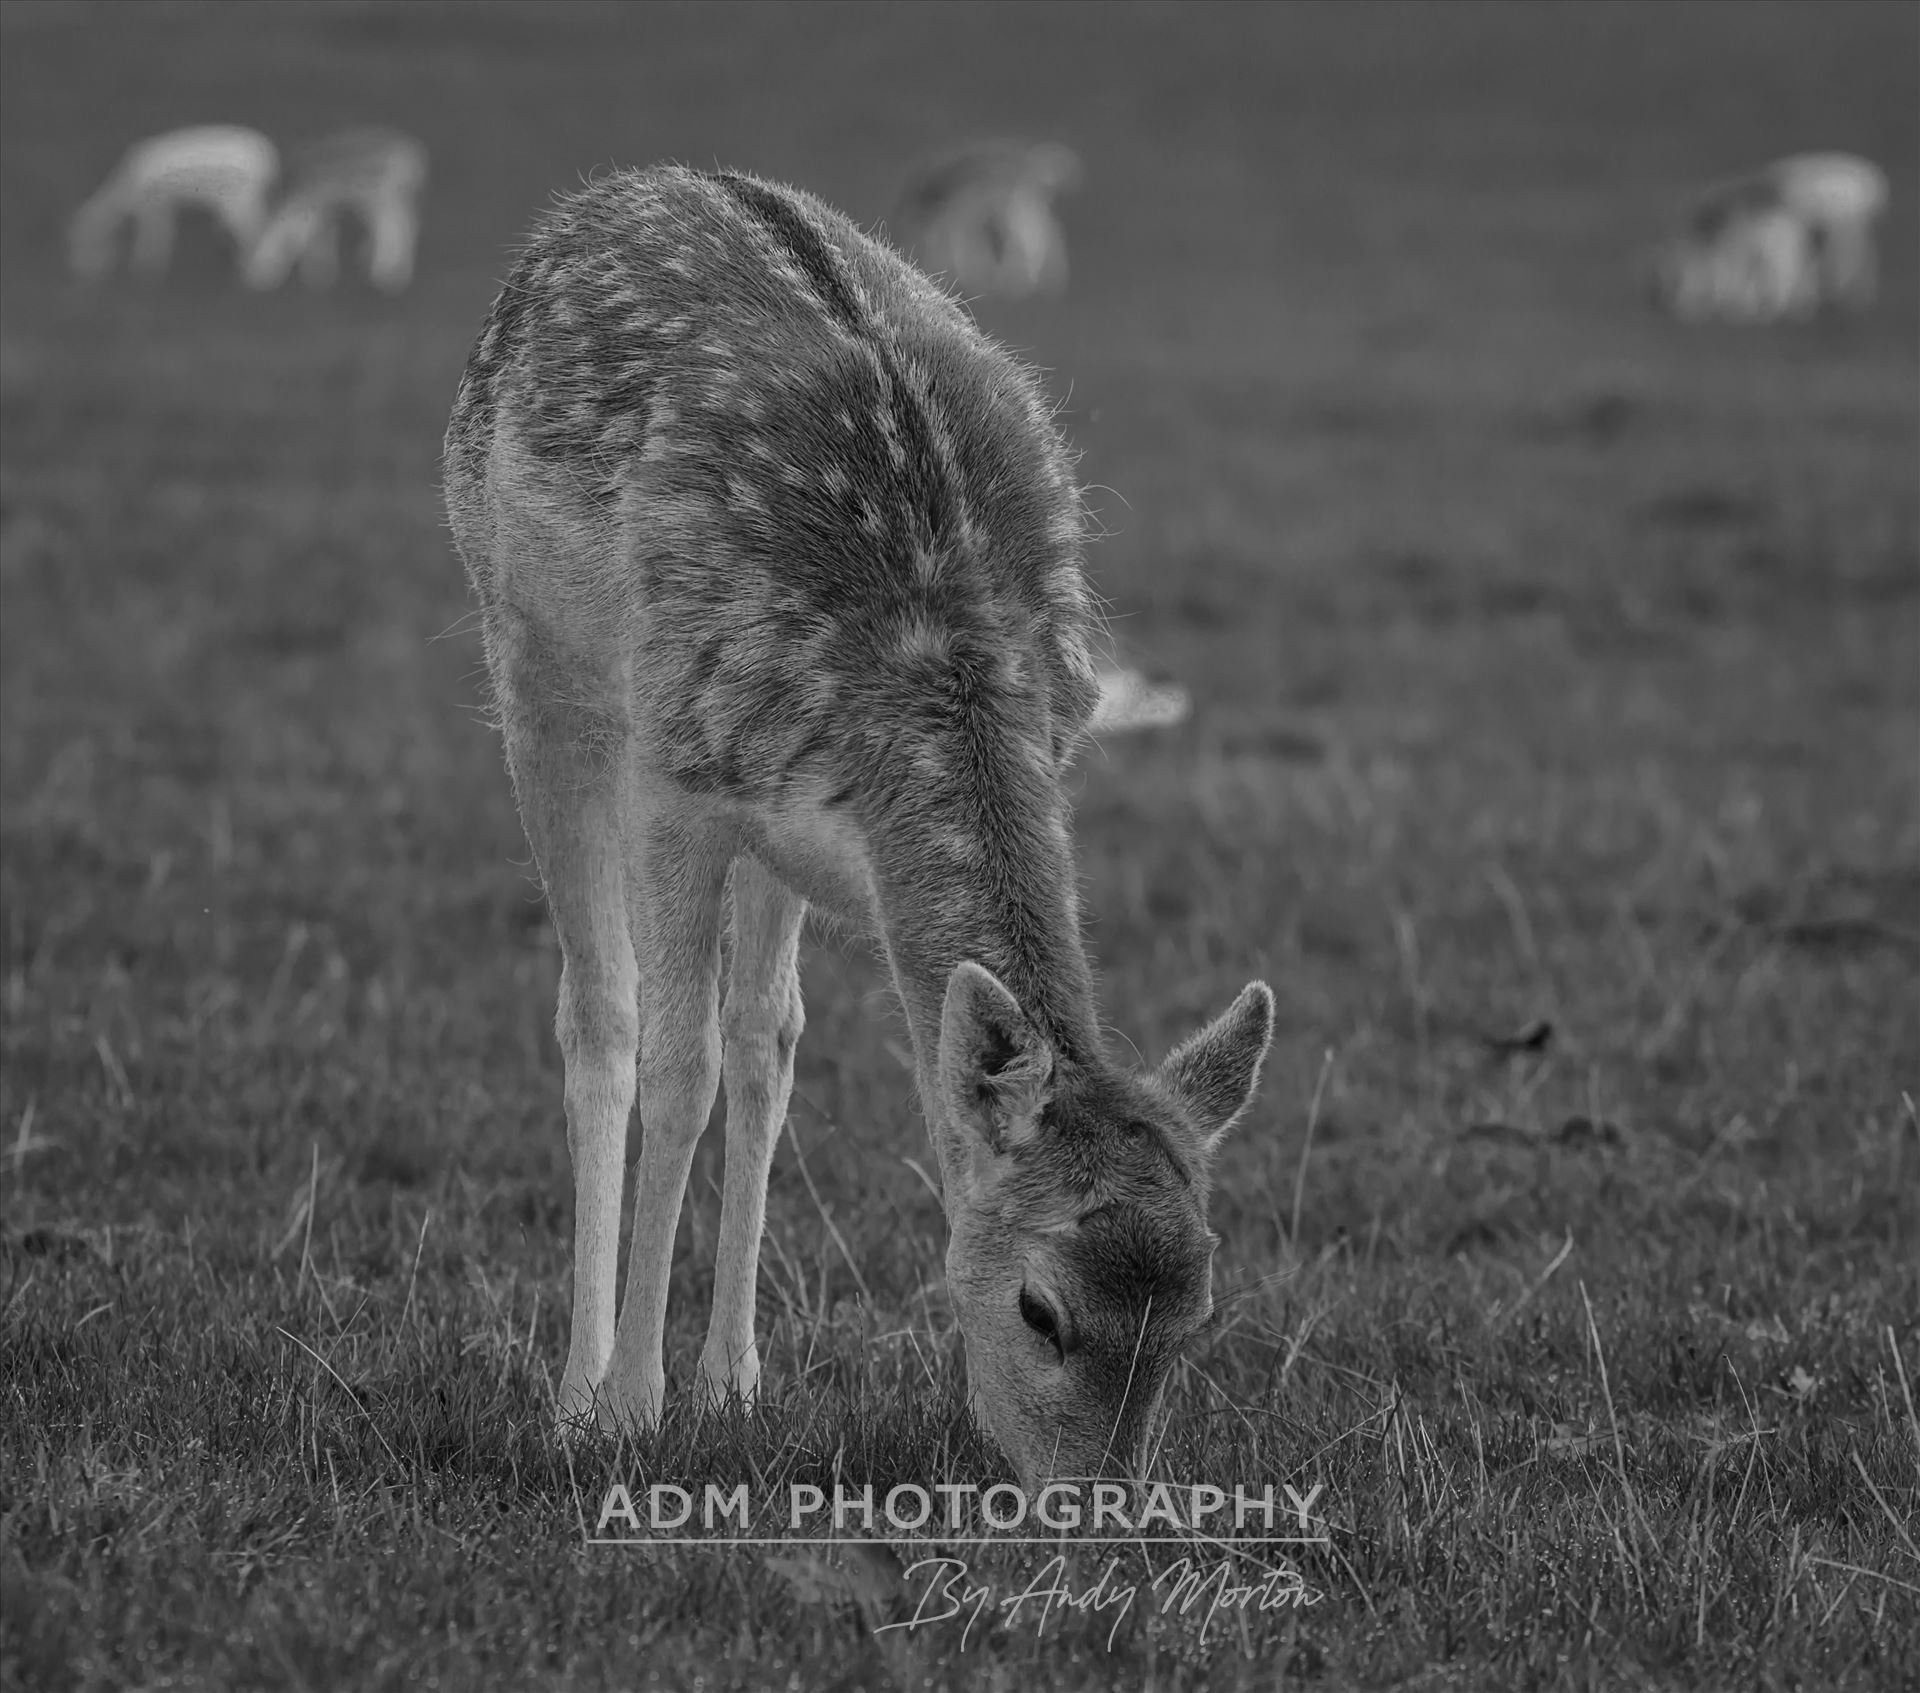 Fallow Deer - Dama Dama (Black & White) The fallow deer (Dama Dama) is a ruminant mammal belonging to the family Cervidae. by Andy Morton Photography